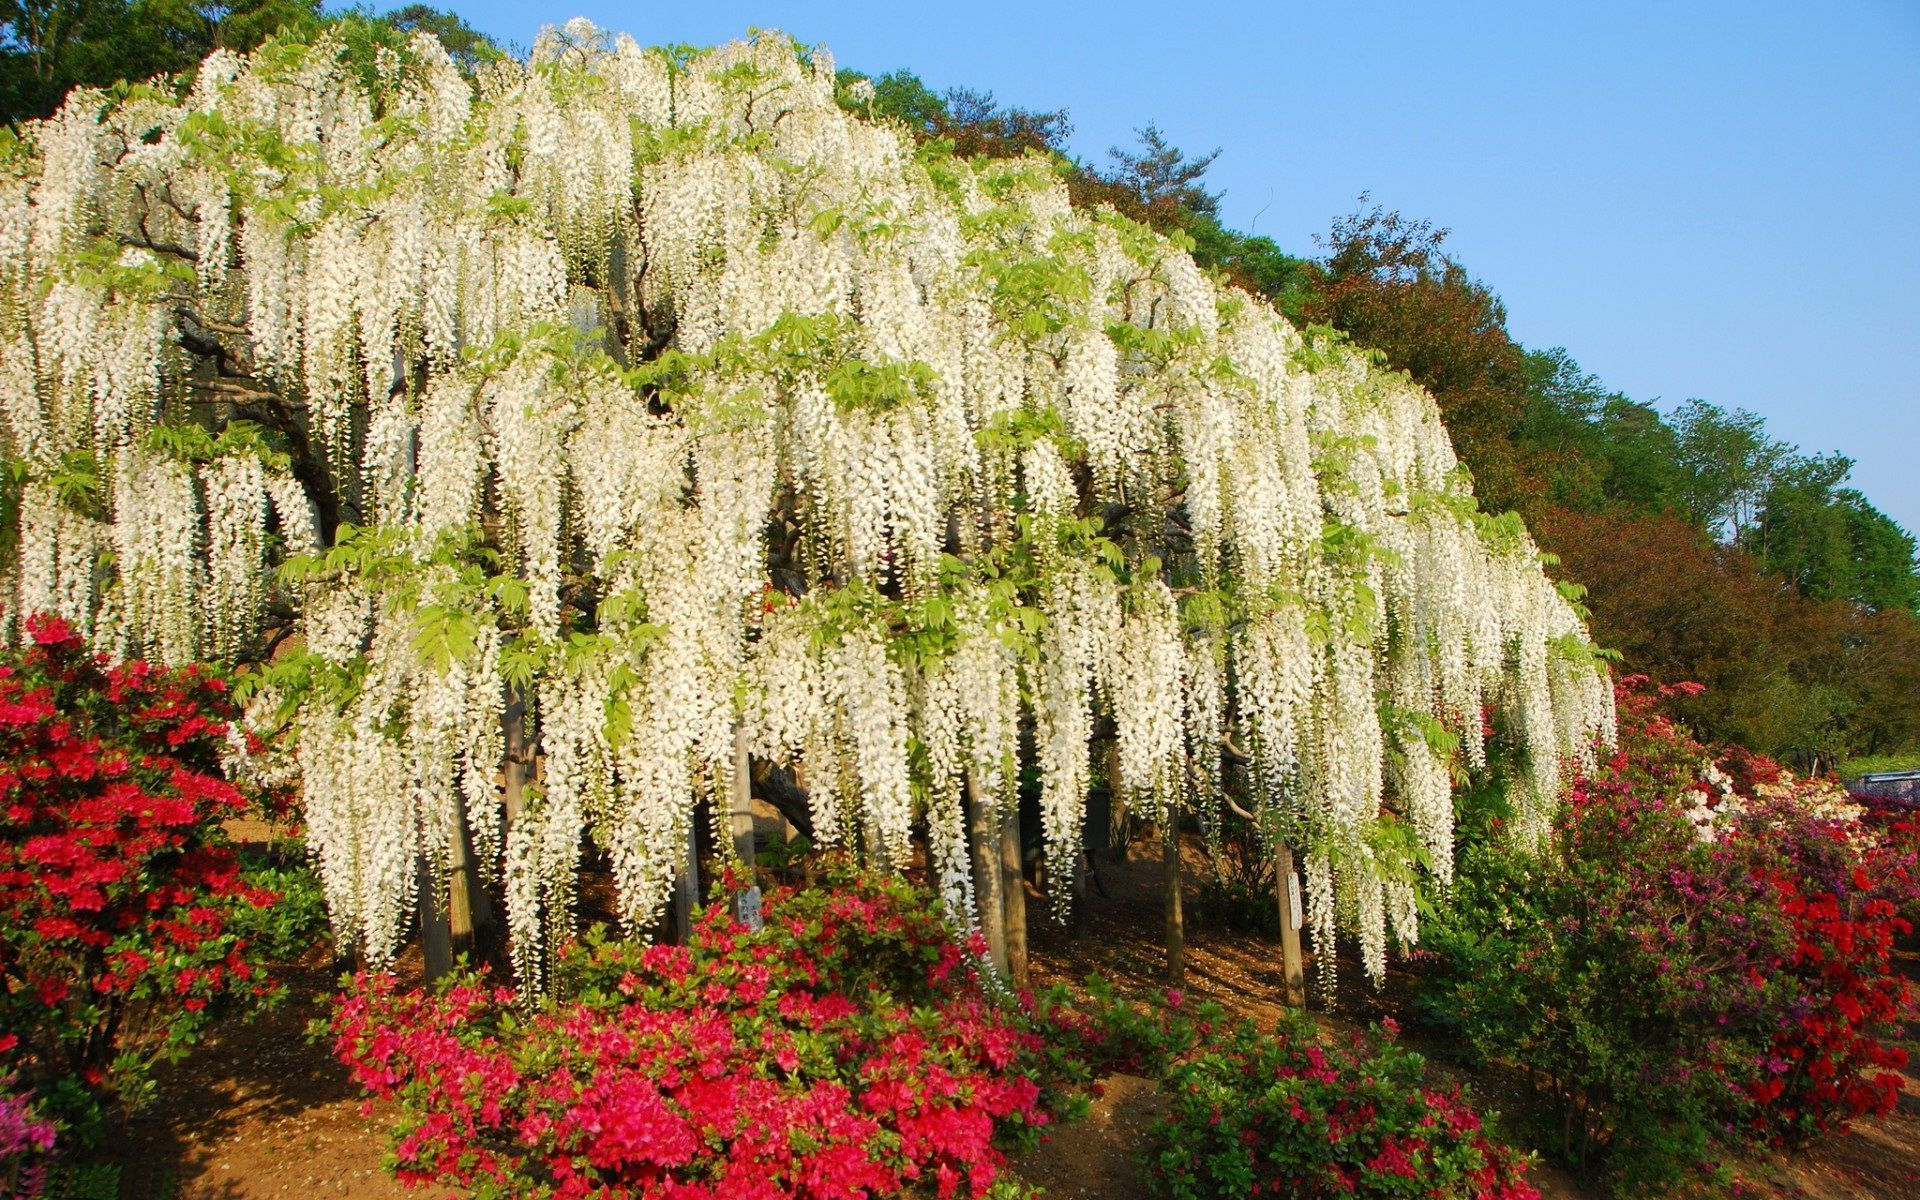 White hanging blossoms